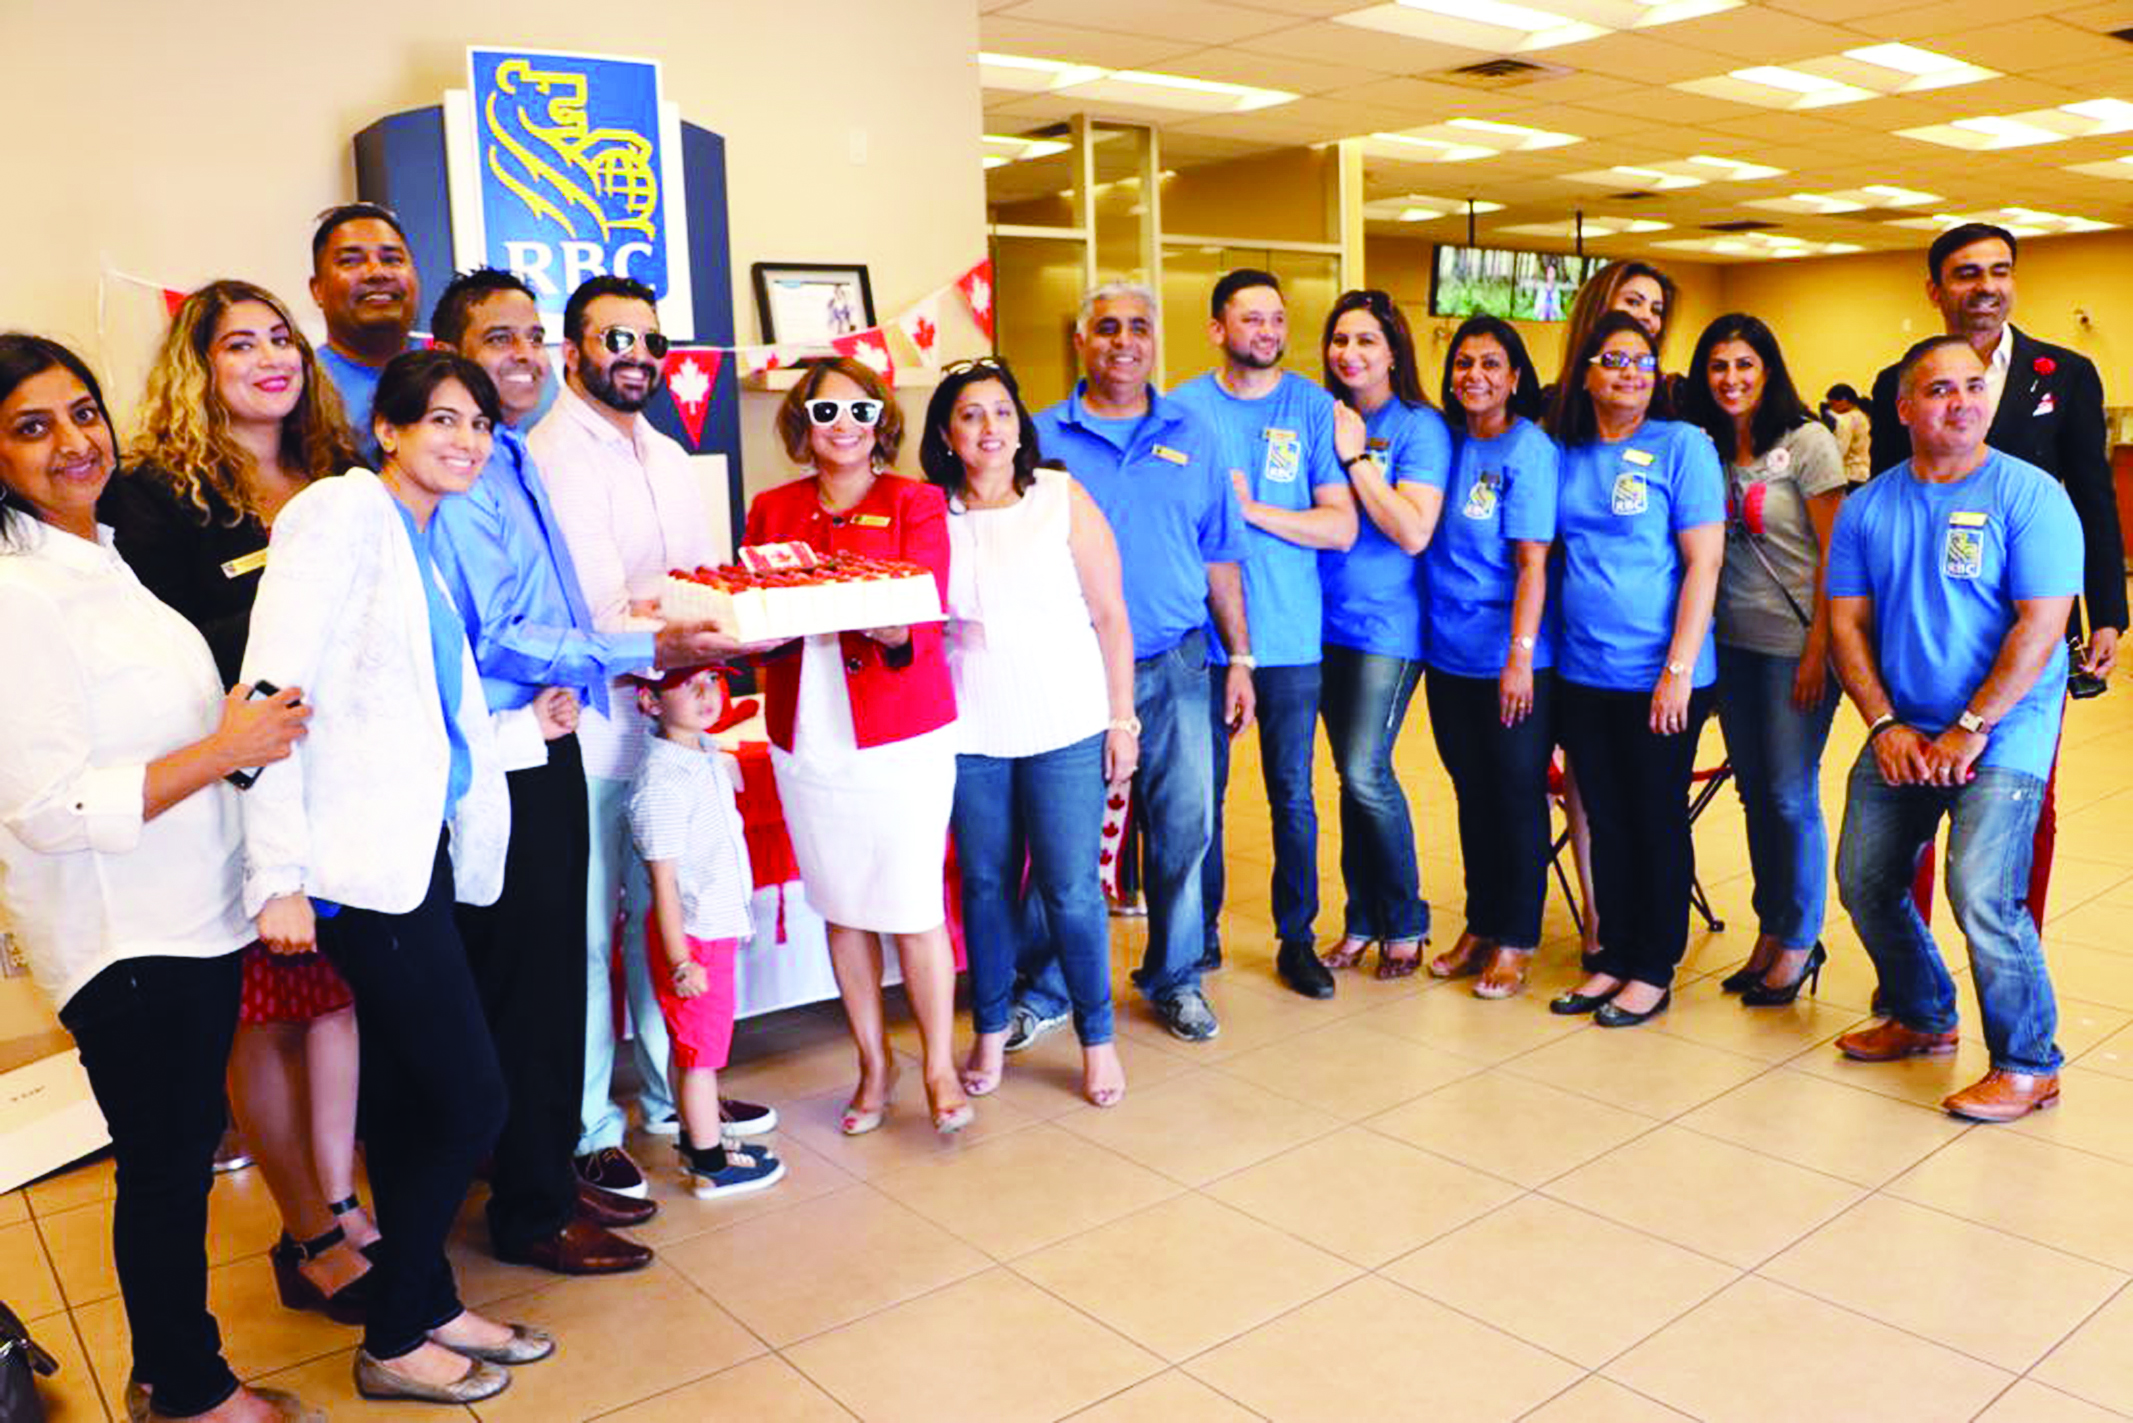 RBC Scott Town Branch Celebrated Canada's 150th